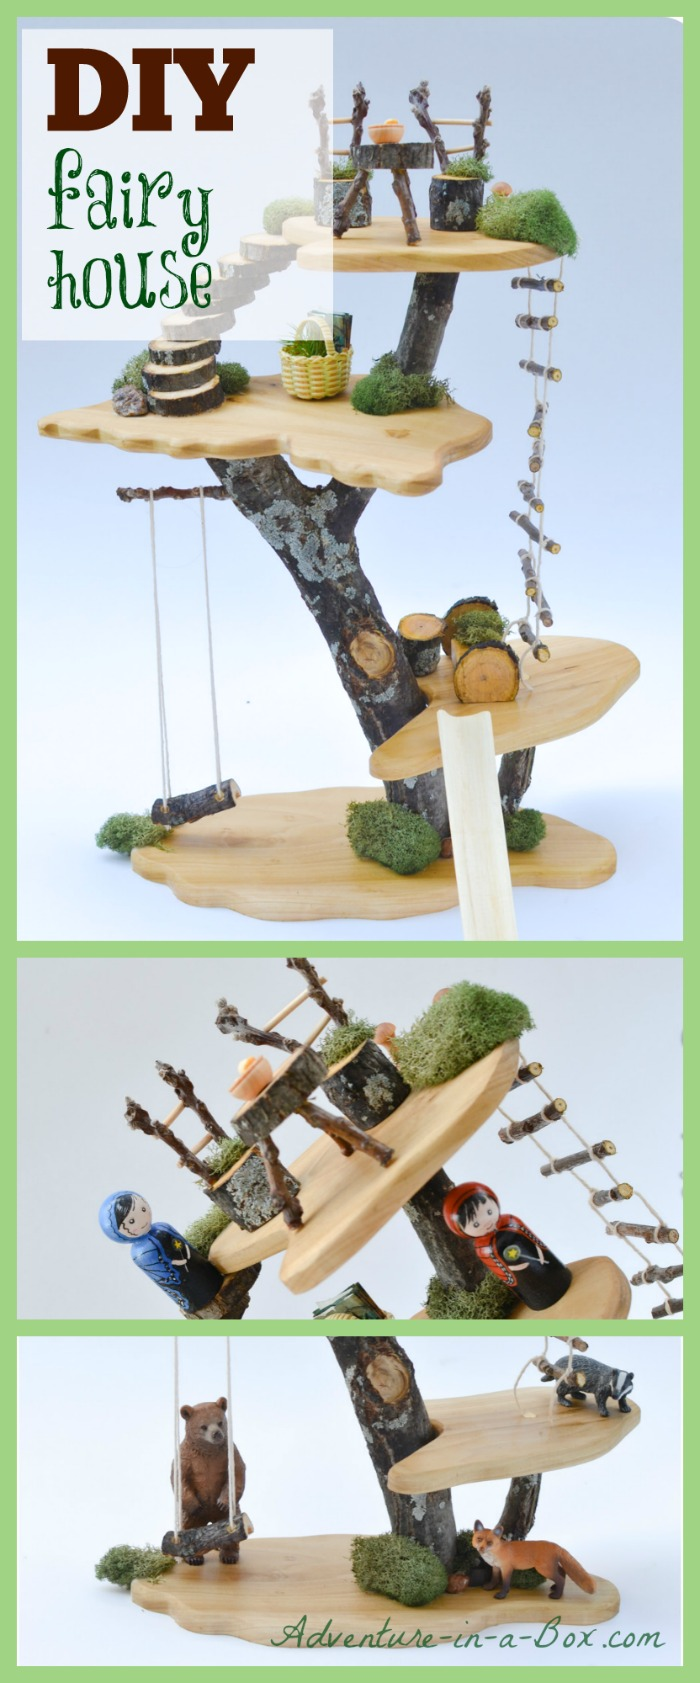 How to make a toy tree house with simple tools and natural materials ...